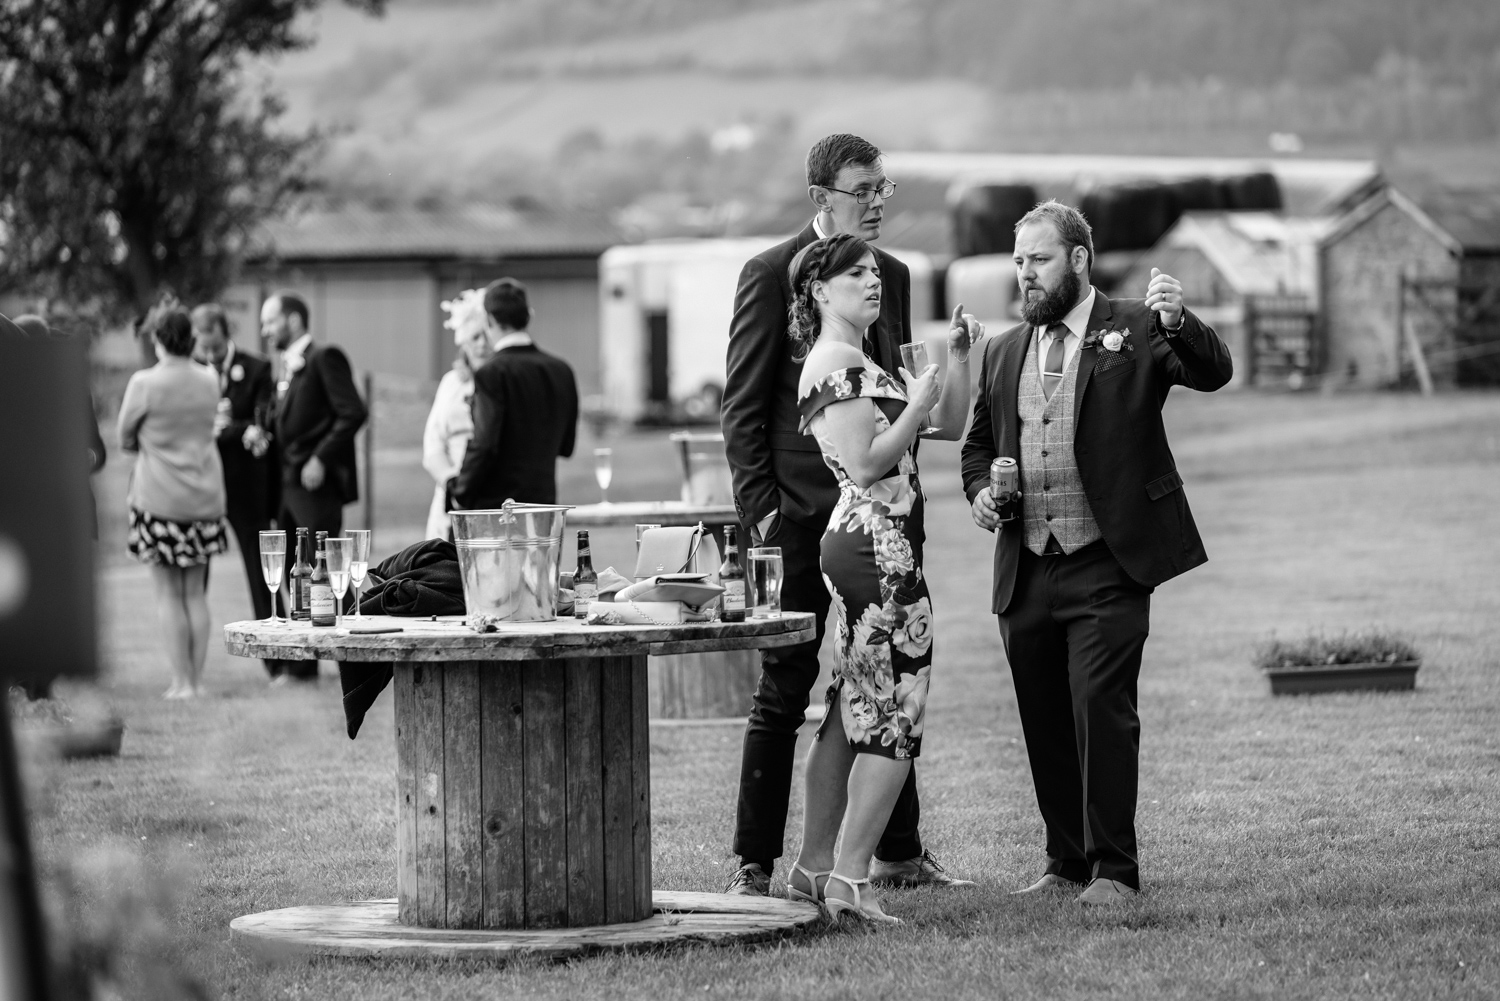 Wedding guests and groom chatting